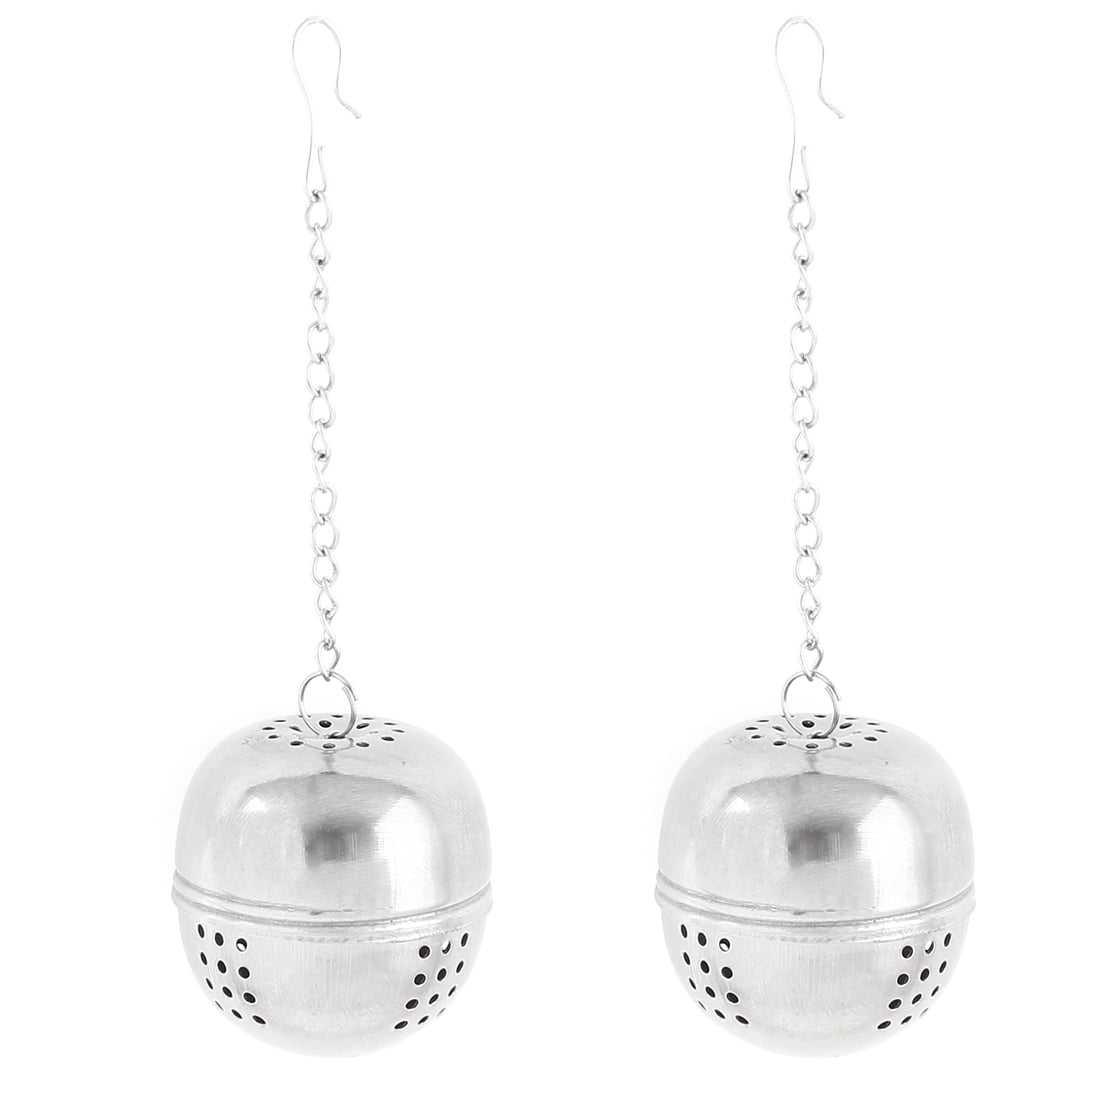 """2 Pcs 1.6"""" Dia Stainless Steel Ball Strainer Tea Leaf Spice Herb Infuser by"""